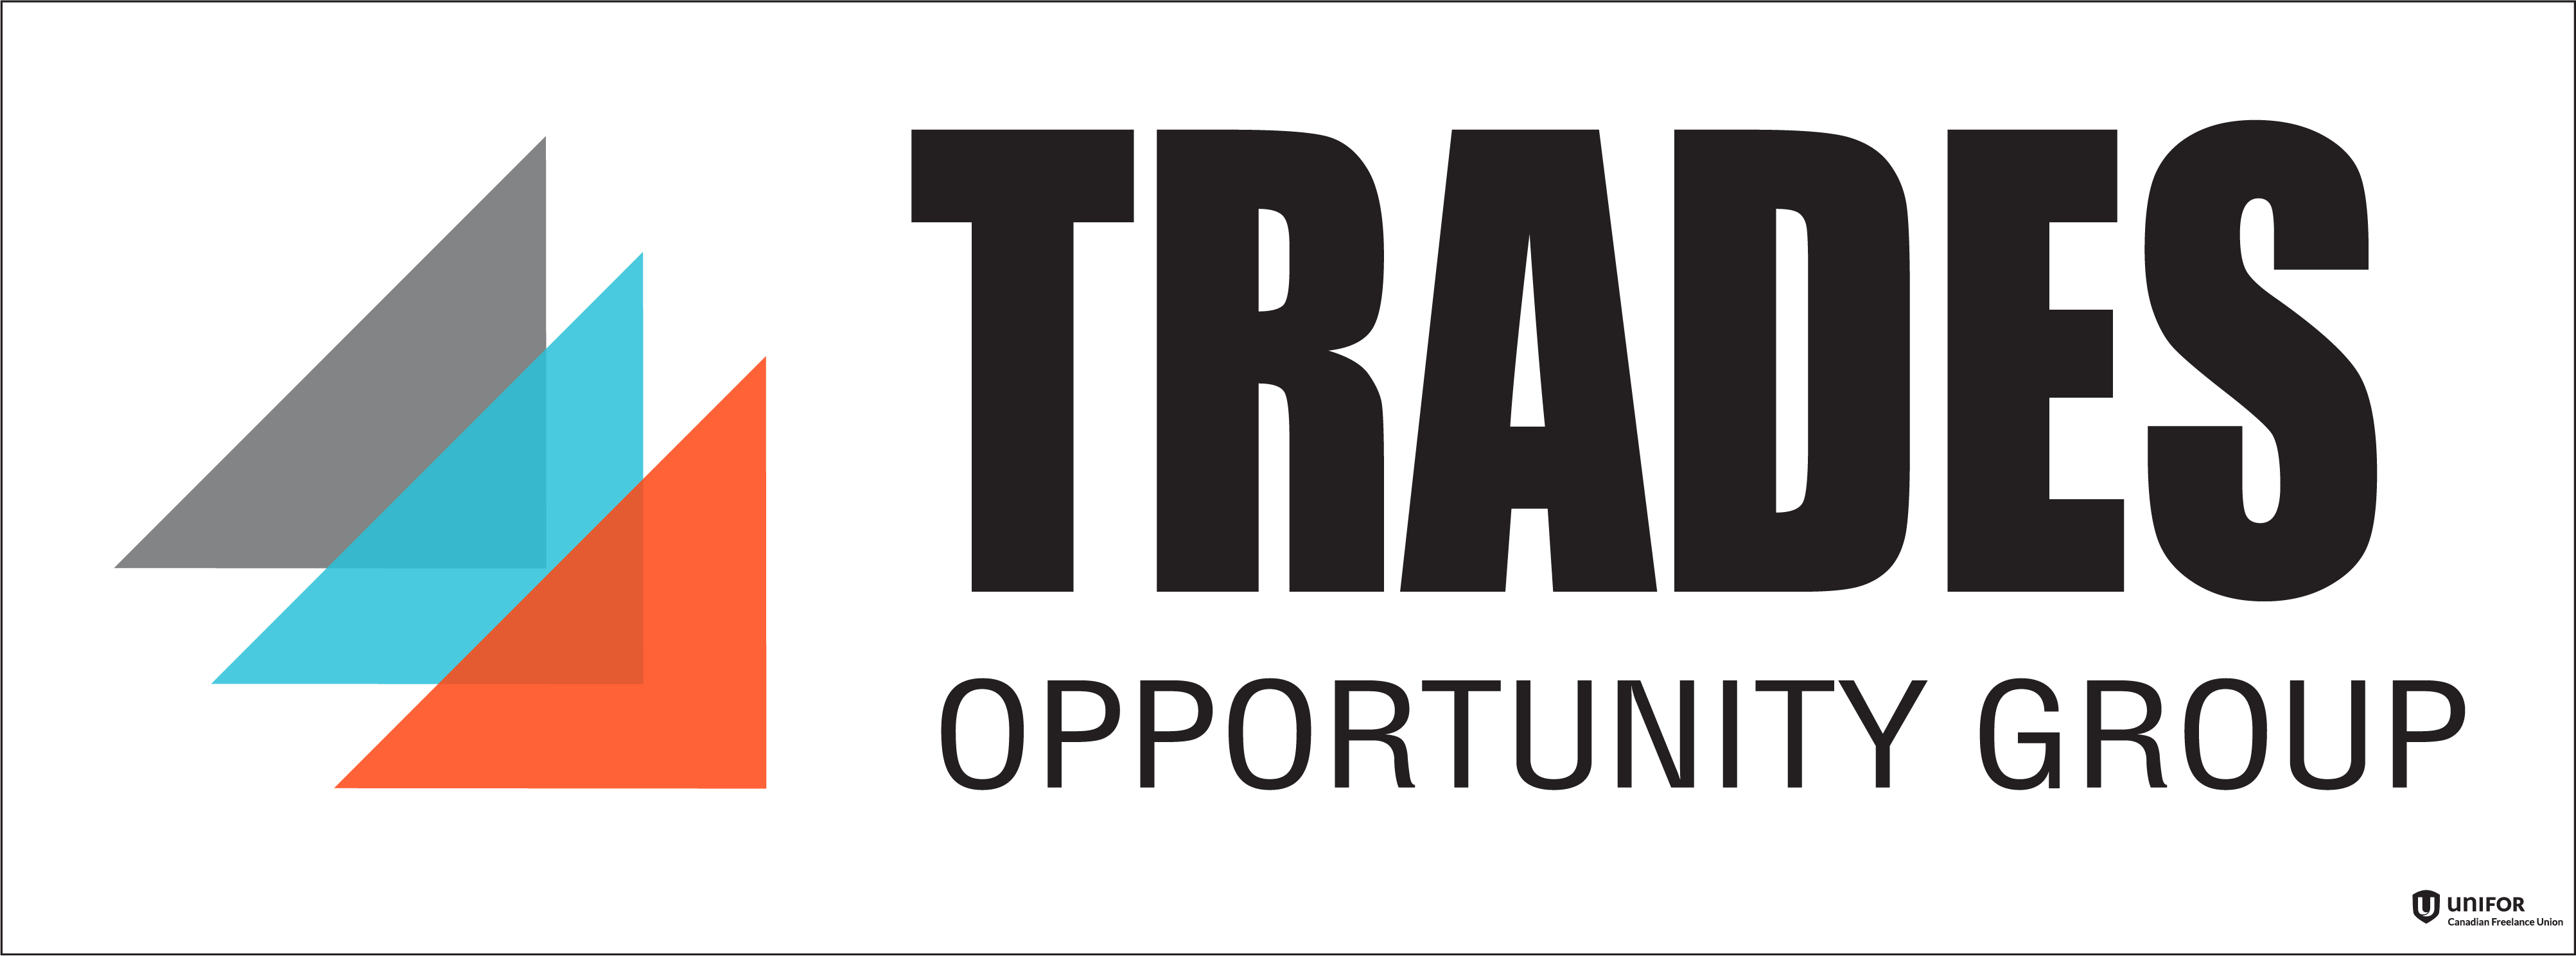 TRADES OPPORTUNITIES GROUP